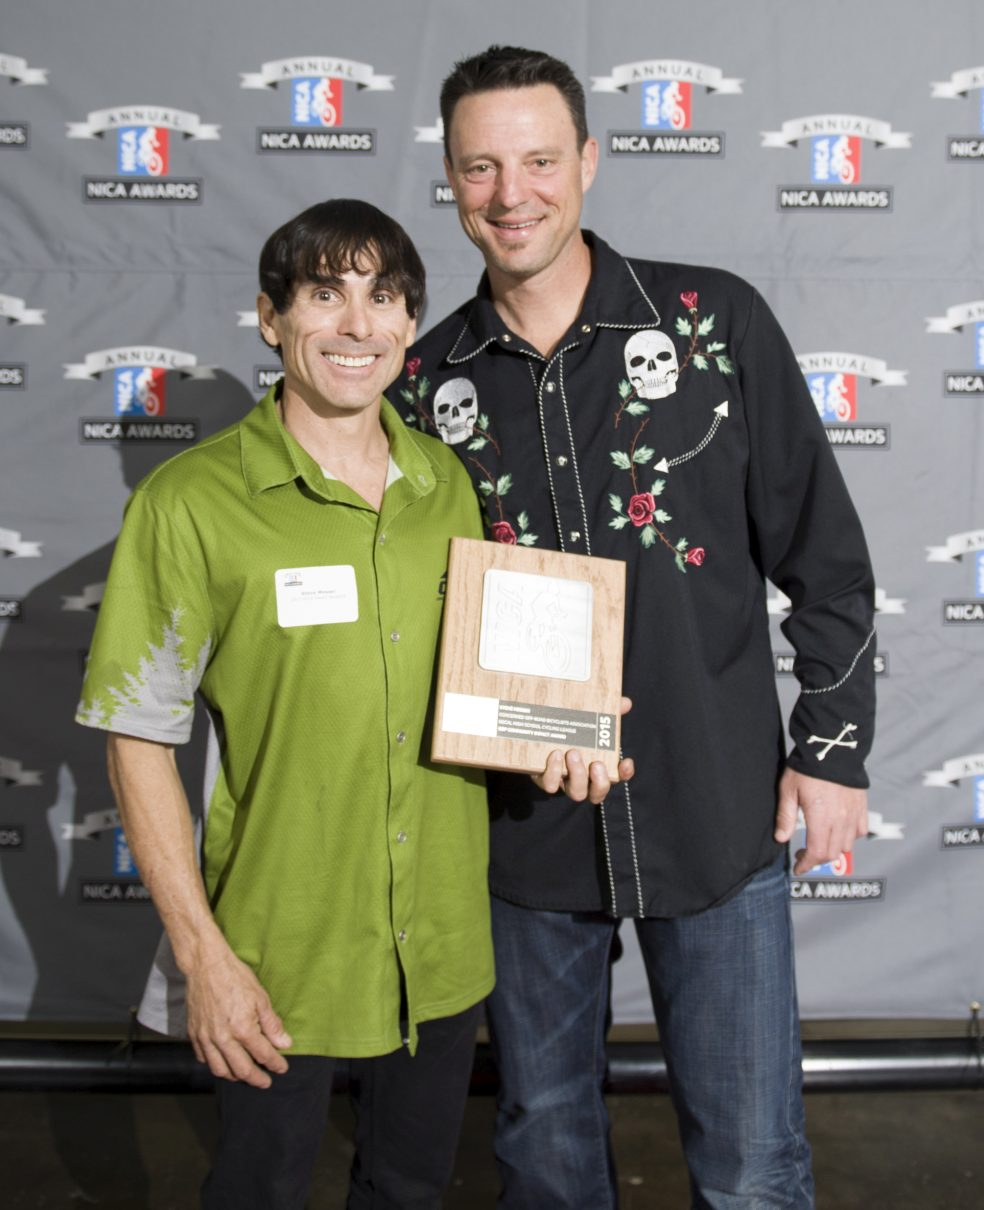 2015 NICA Awards. Photo by Karl Nielsen http://www.karlnielsenphotography.com/2015 NICA Awards Ride, Emeryville CA Photo by Karl Nielsen http://www.karlnielsenphotography.com/2015 NICA Awards Ride, Emeryville CA Photo by Karl Nielsen http://www.karlnielsenphotography.com/